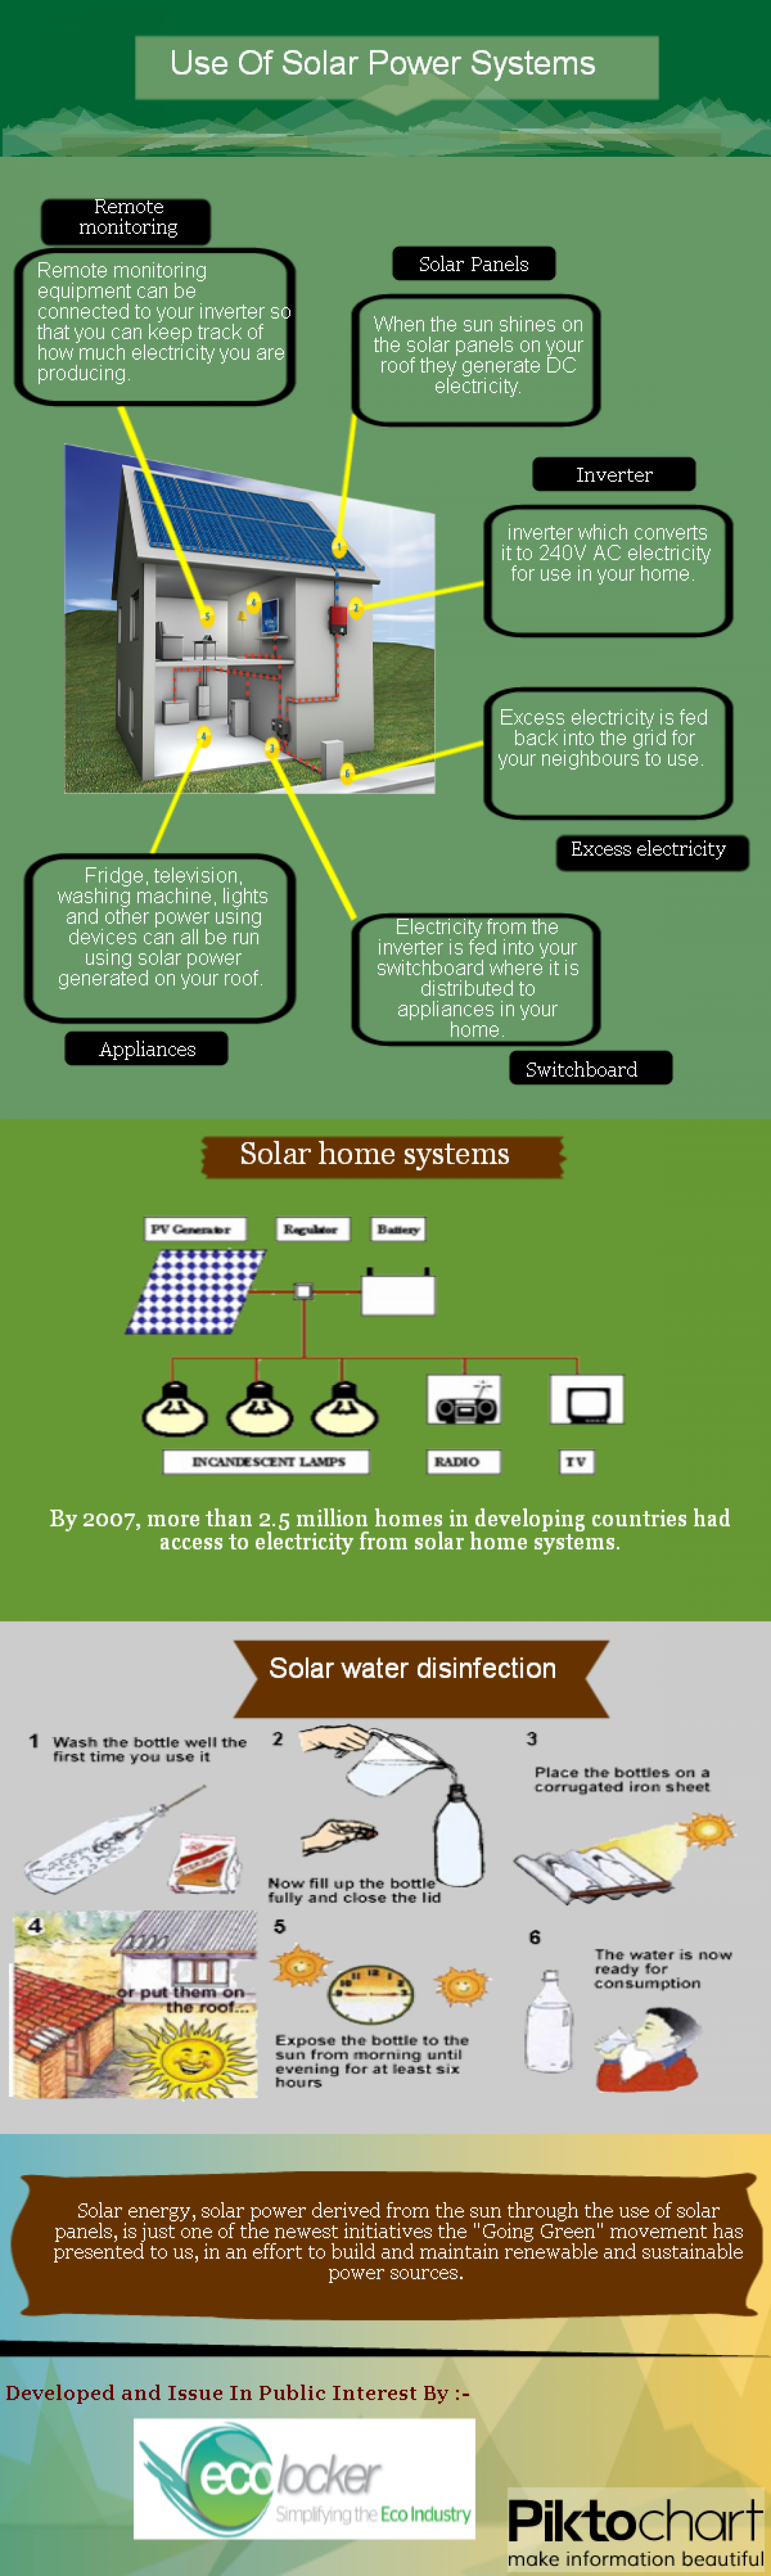 Use Of Solar Power Systems Infographic